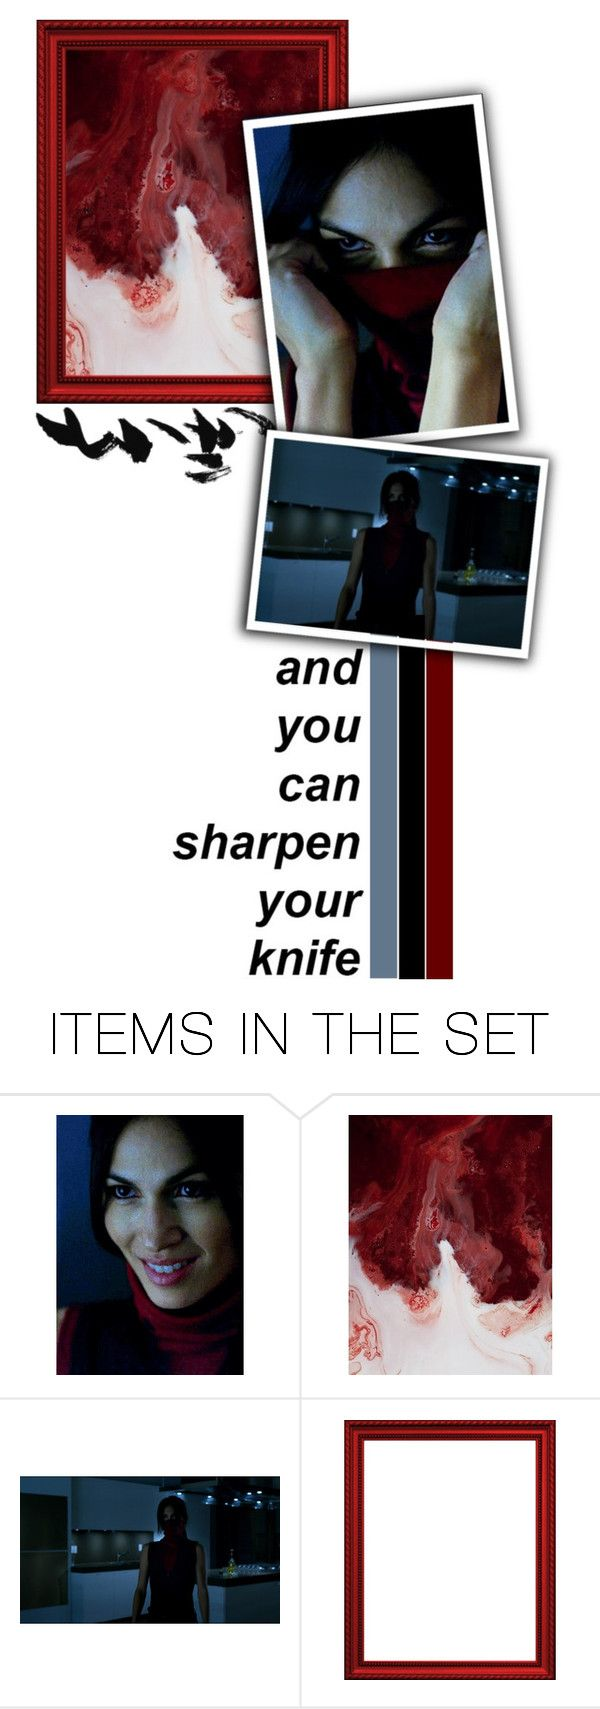 """""""Daredevil // Elektra Natchios // """"I'll tell you my sins and you can sharpen your knife."""""""" by alyssaclair-winchester ❤ liked on Polyvore featuring art, marvel, daredevil and elektranatchios"""